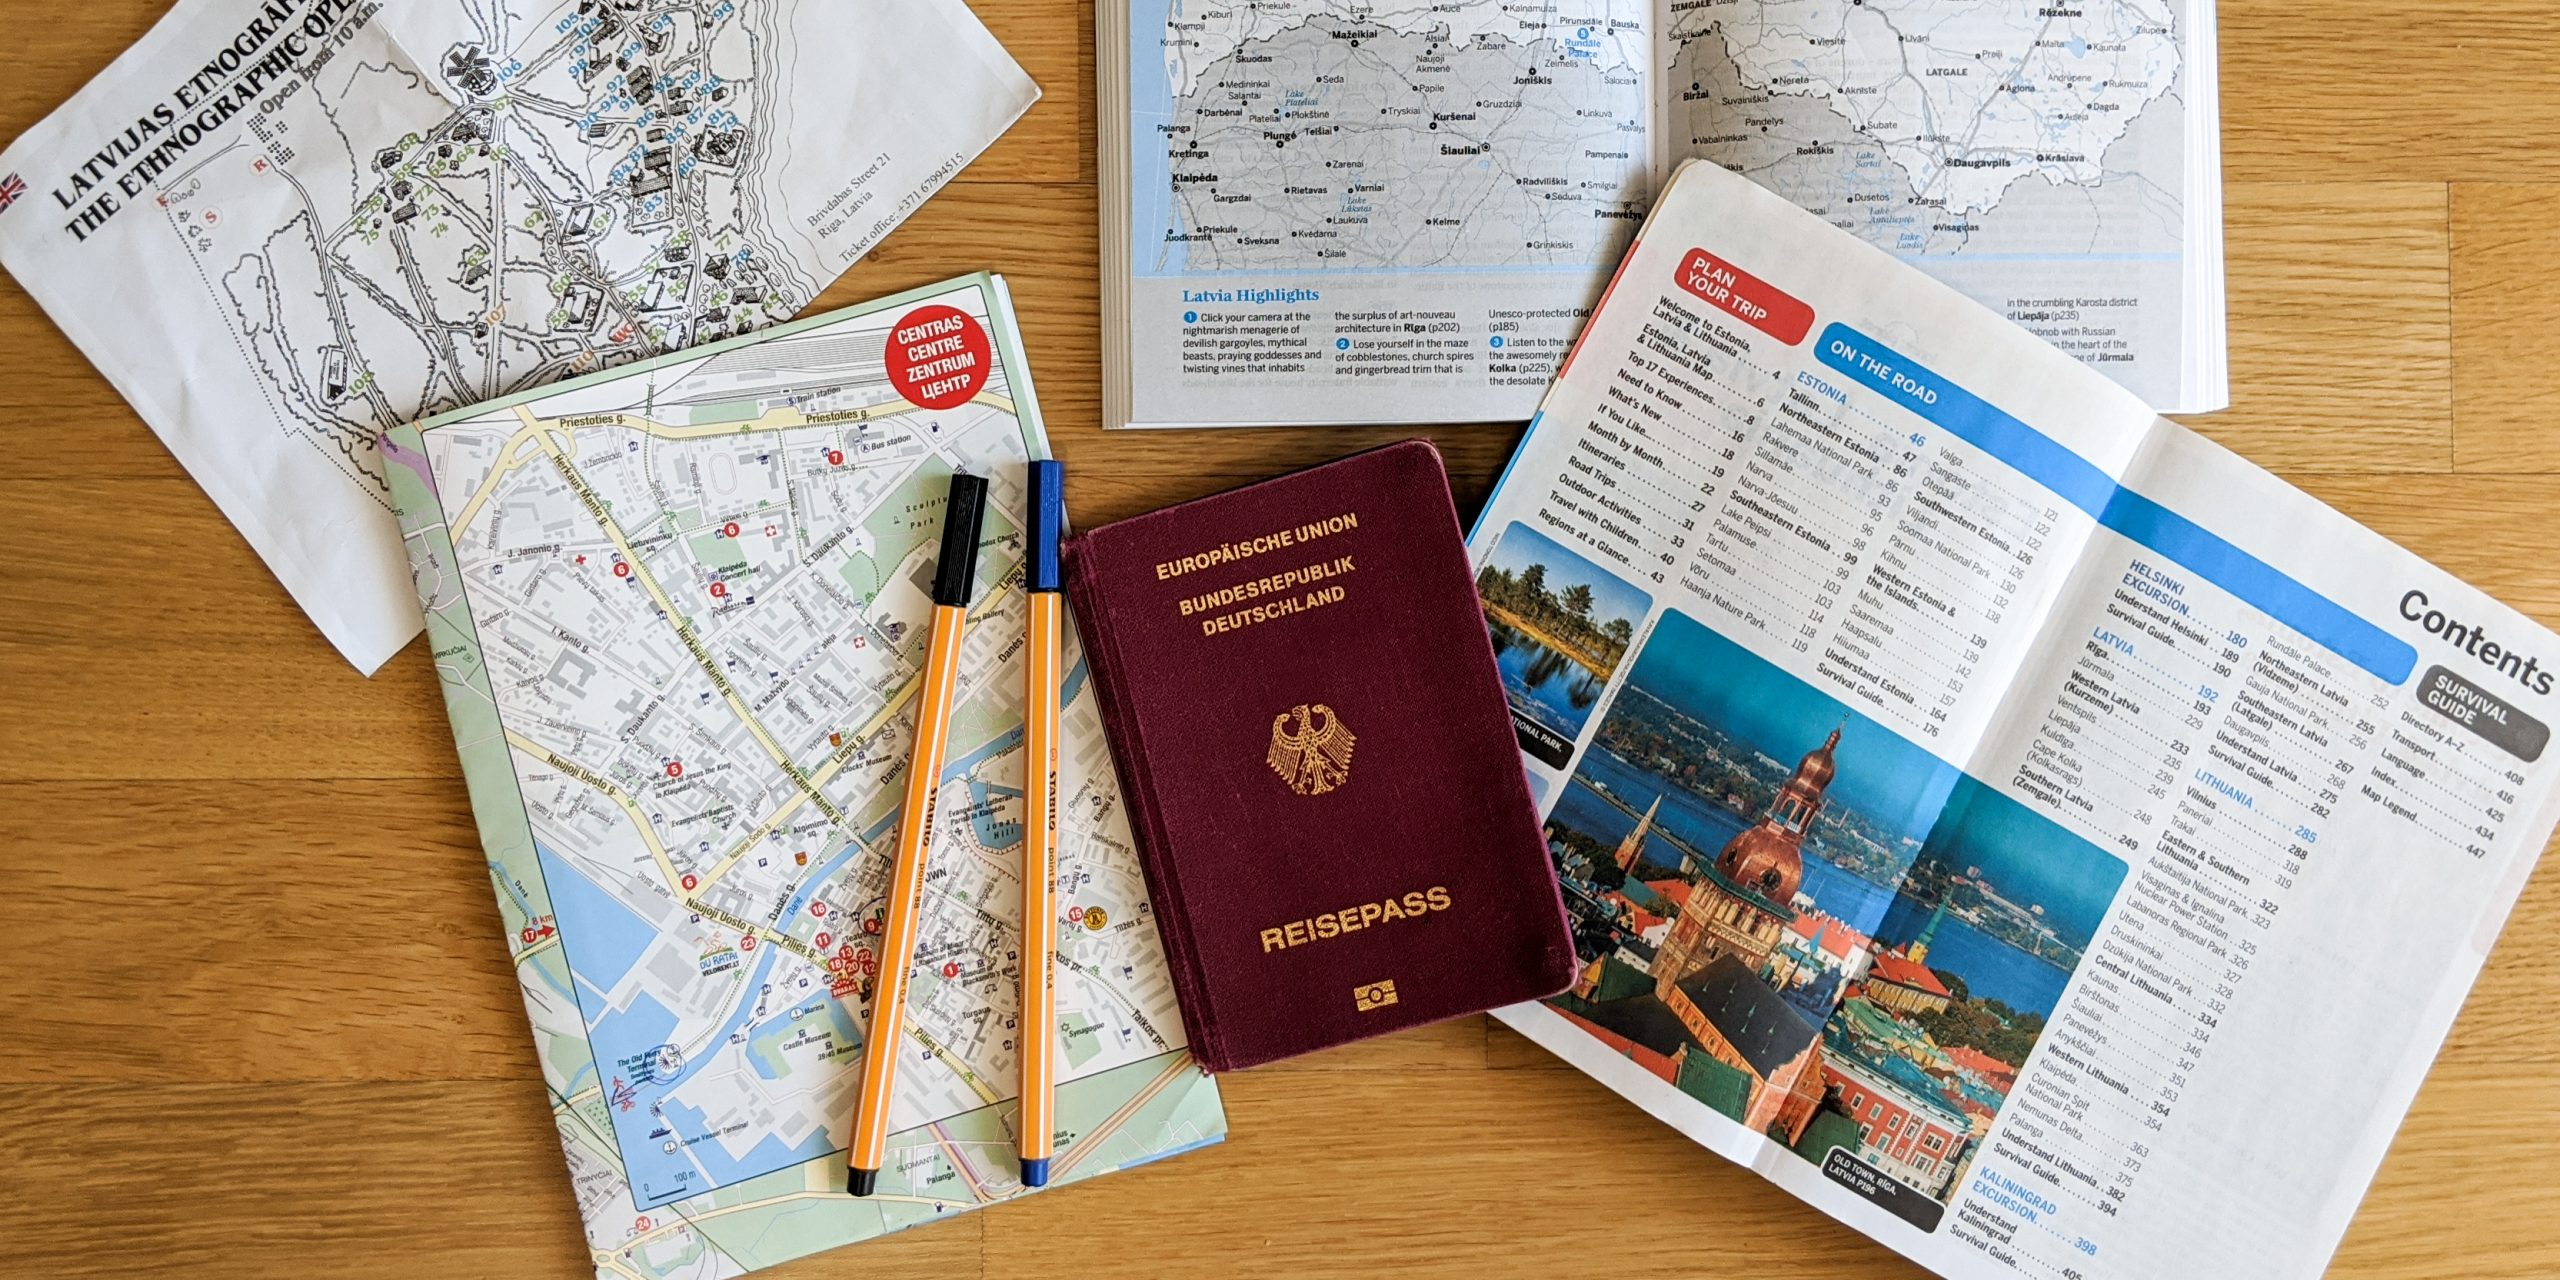 Travel Research documents, maps and a passport